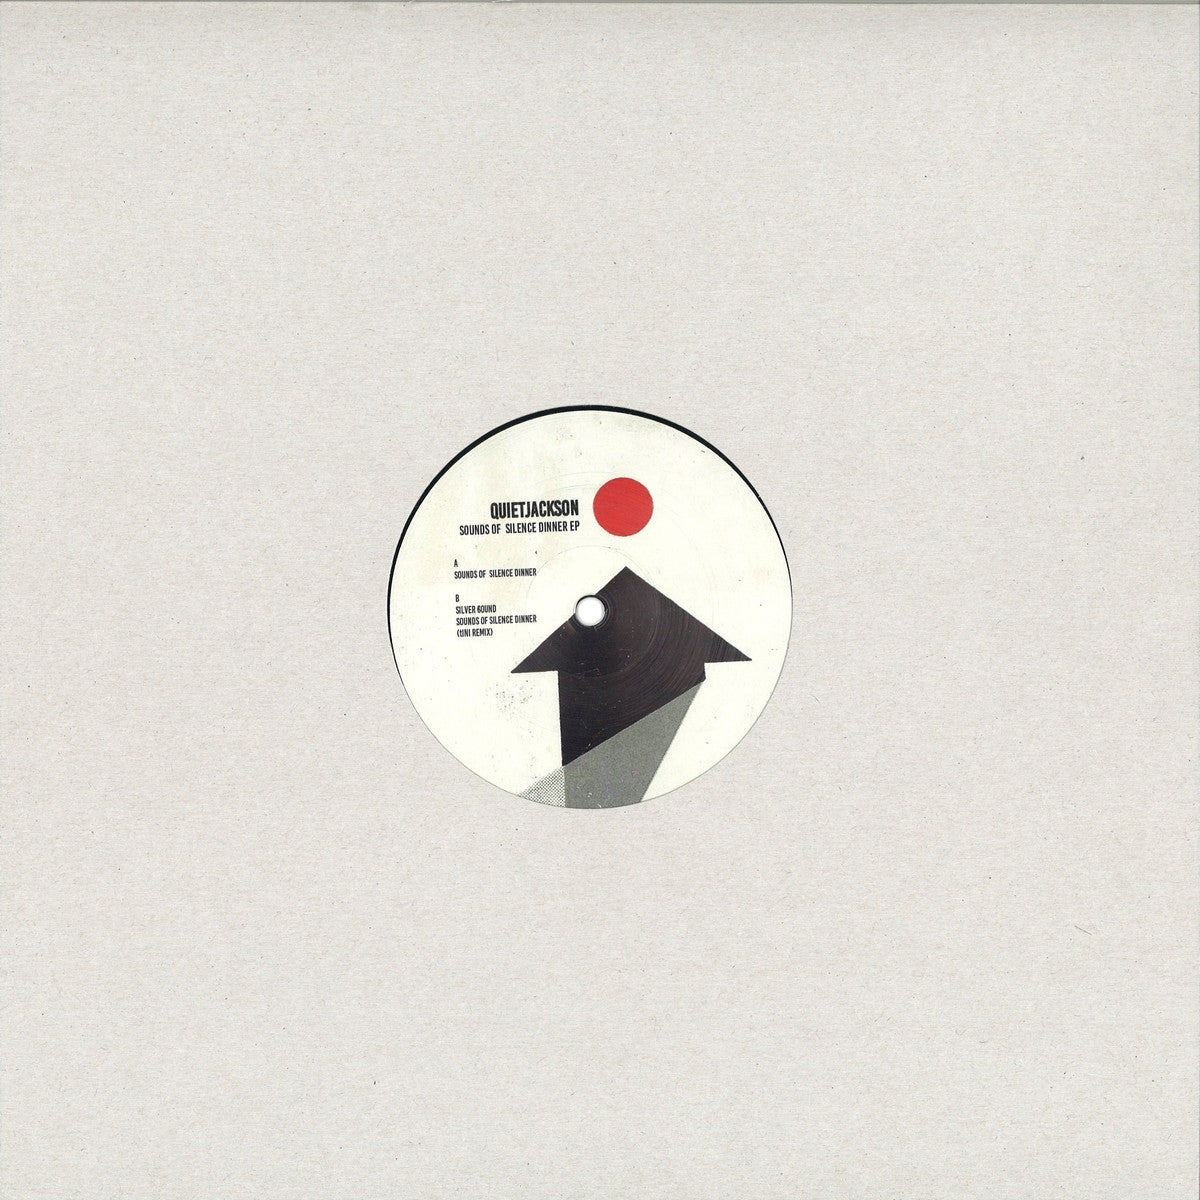 "Quietjackson ‎– Sounds Of Silence Dinner EP : XIII ‎– XIII002 : Vinyl, 12"", EP"